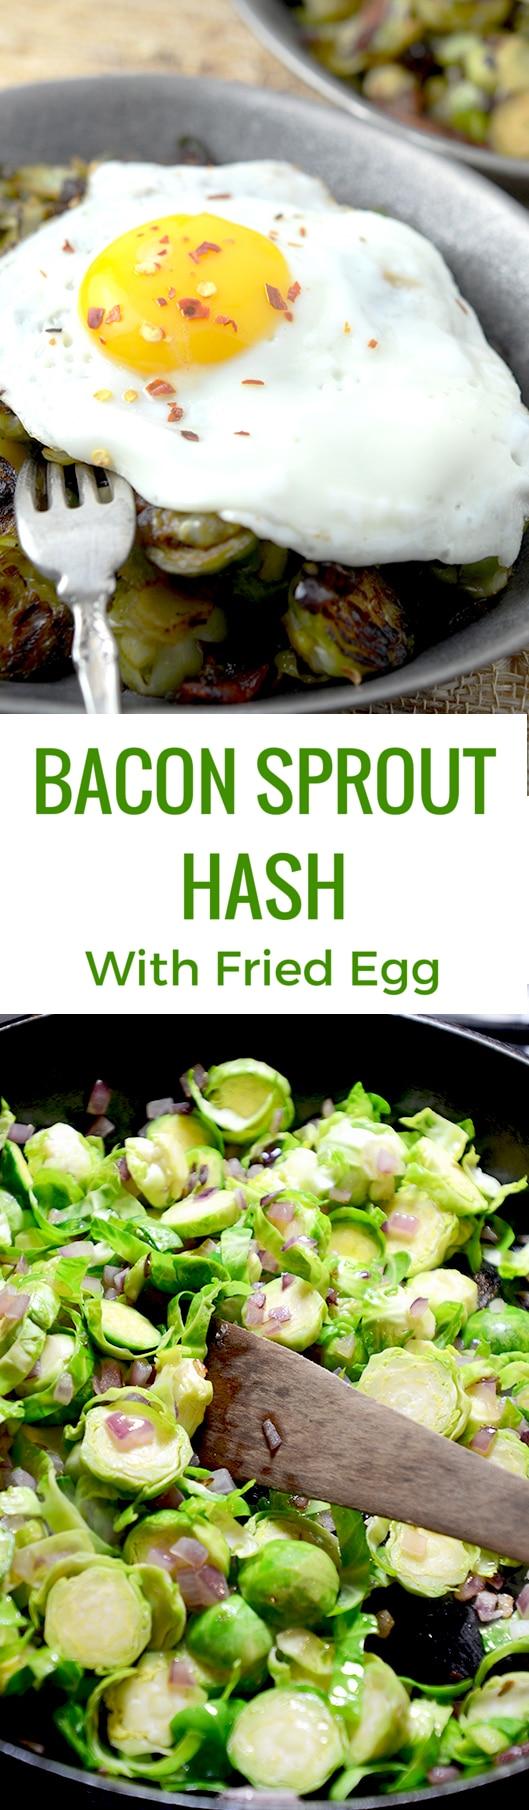 Piercing the slow cooked egg on top of the brussels sprouts and bacon ...